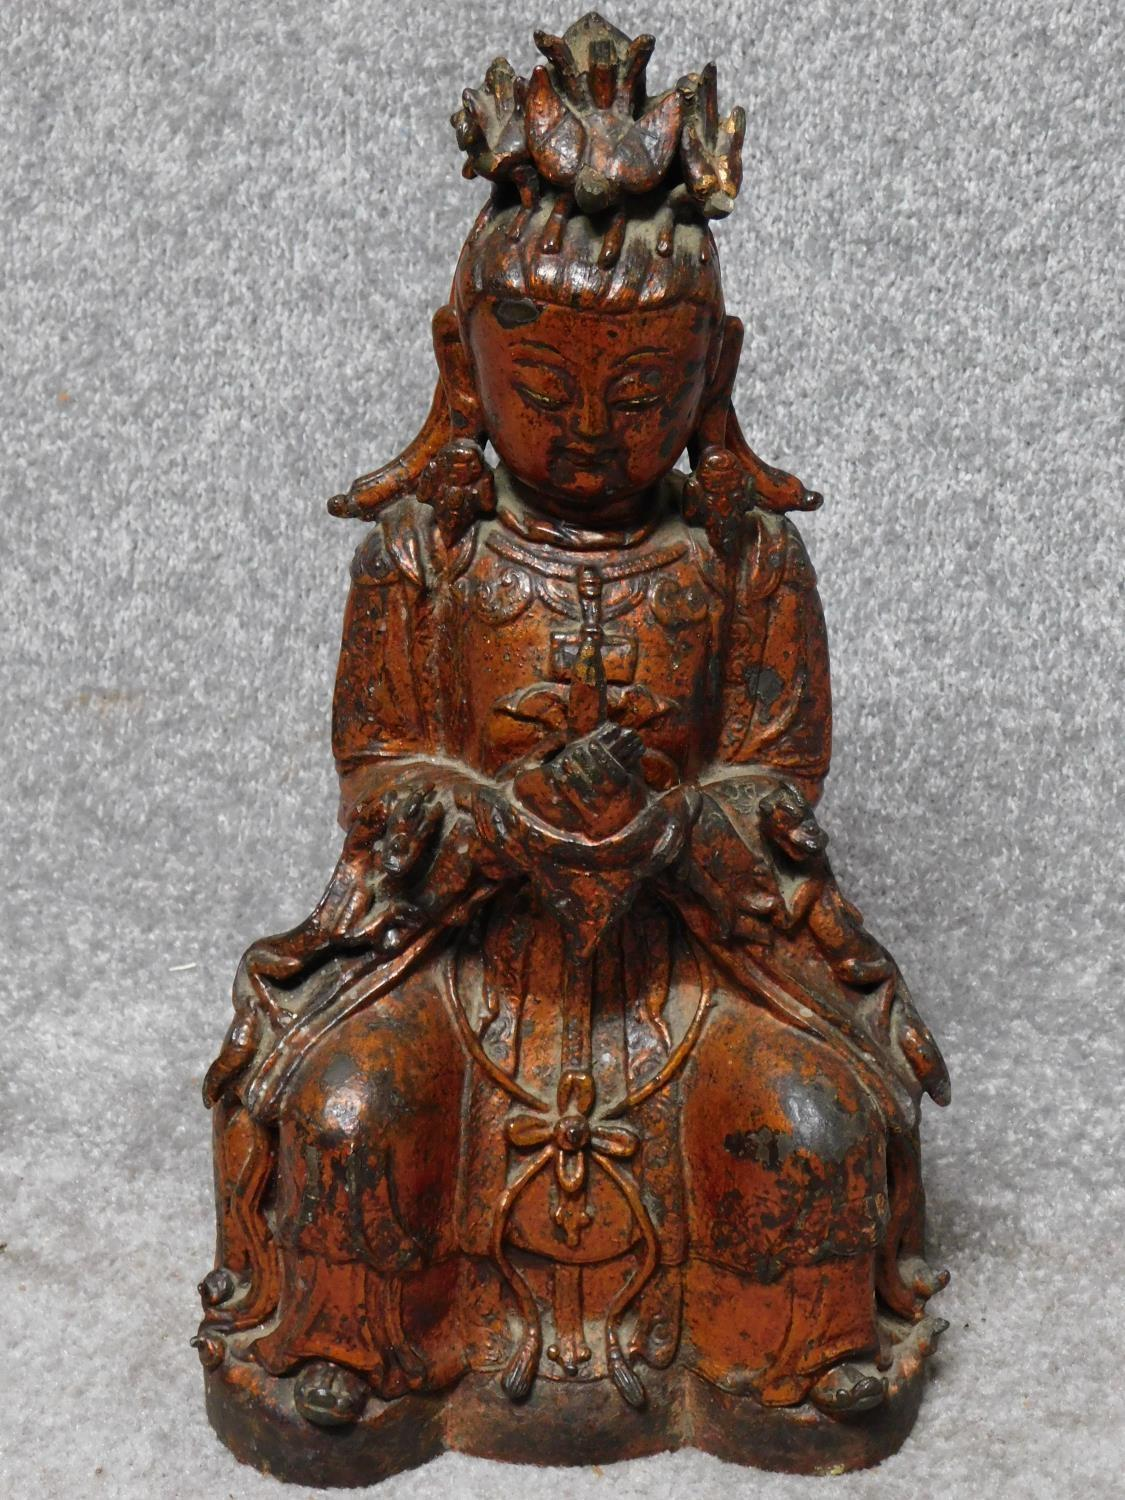 Possibly Ming dynasty Chinese gilt lacquered bronze seated figure of Guanyin. From a private